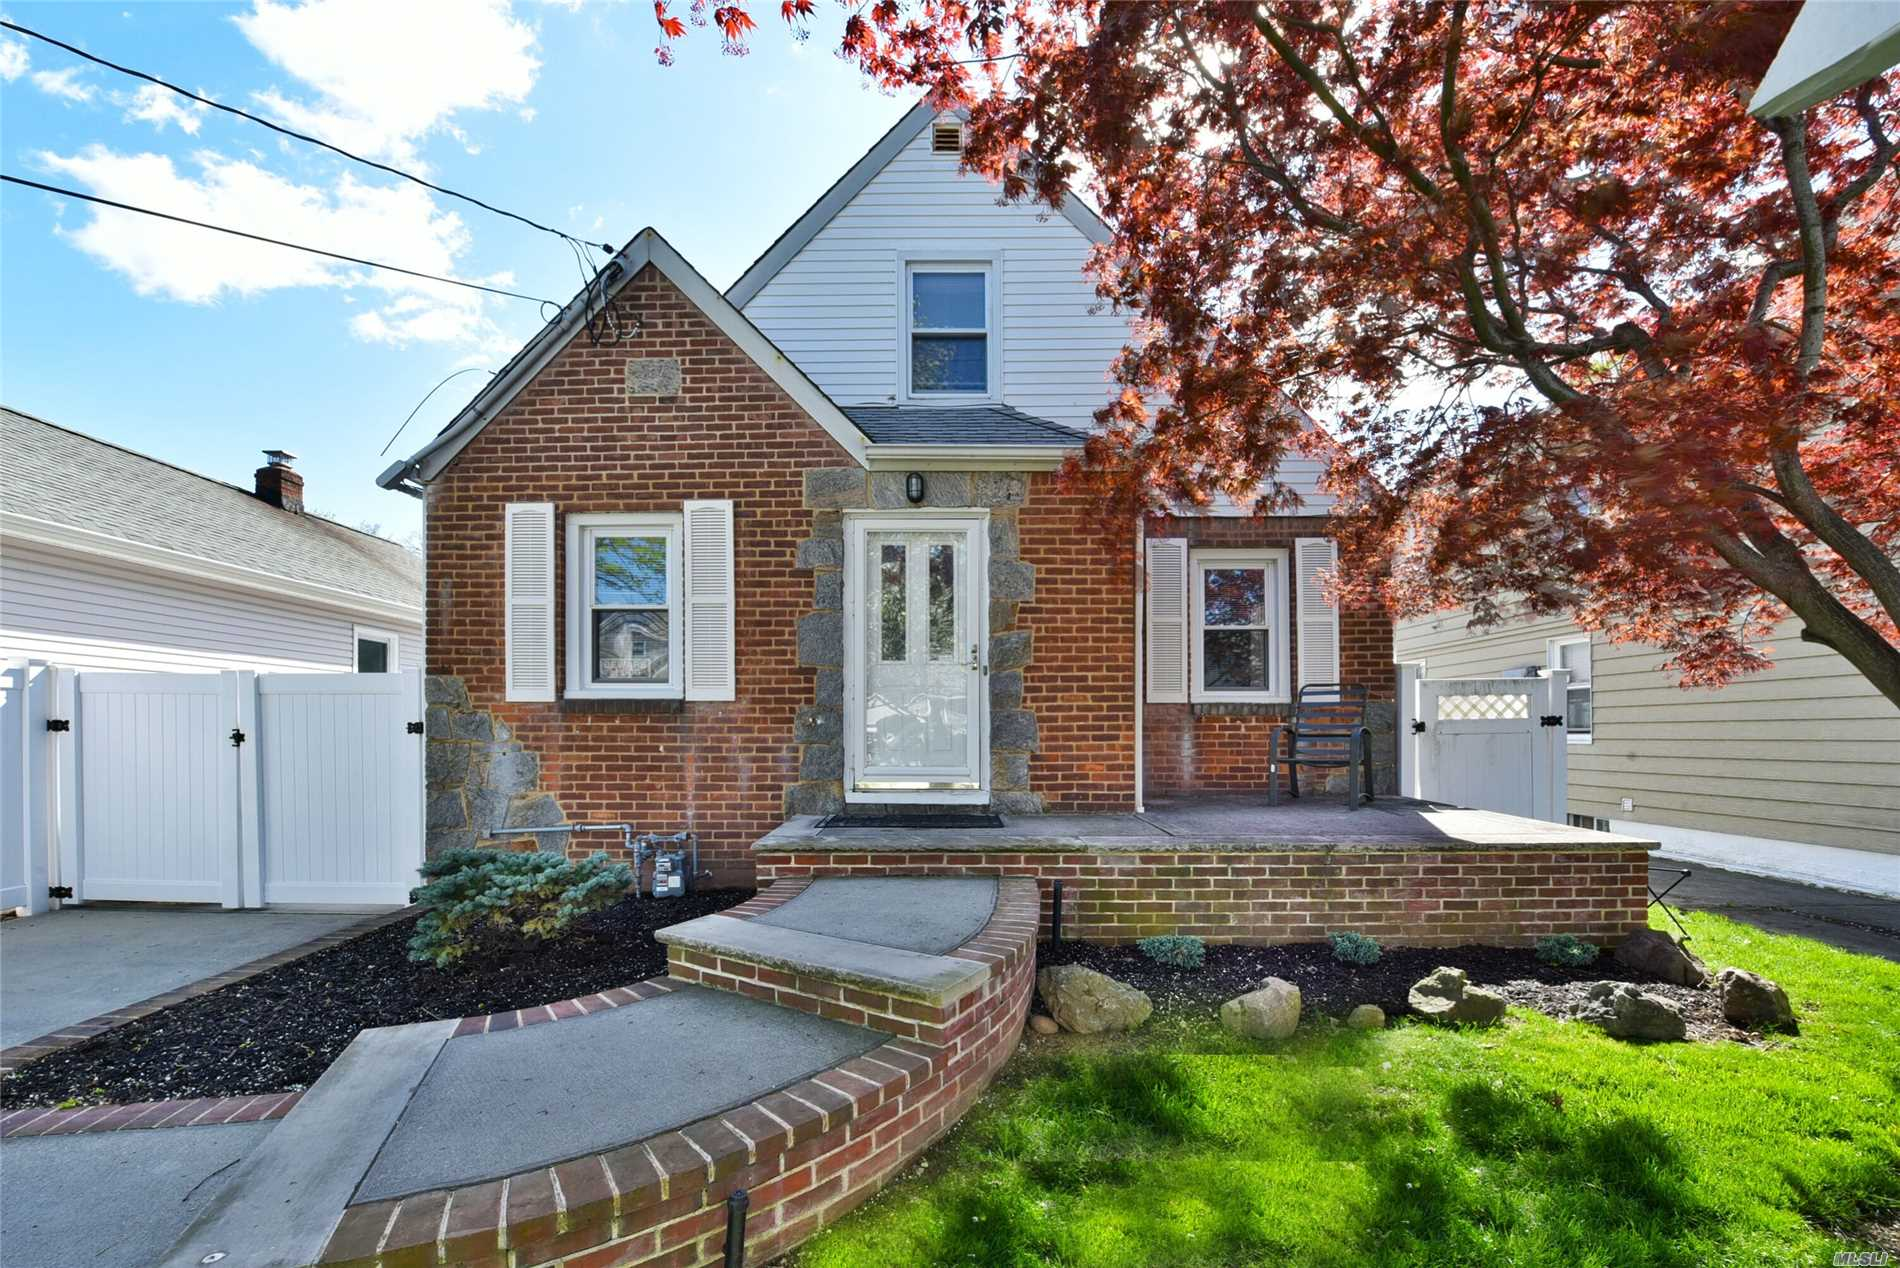 Lovely Updated Dormered Brick Cape Located In Franklin Square. This Home Features Tiled Flrs, New Winds, New Hot Water Heater, 200 Amps, In-Ground Sprinkler System, 9 Yr Young Roof.Eik W/Oak Cabinets, Corian Counter Tops, Recessed Lighting & New Ss Appls, Liv Rm, Mstr Bdrm & New Bath On The Main Level, 2 Additional Bdrms On The Second Flr, Full Finished Basement W/Full Ba, Utilities, Fully Fenced Private Yard, 1 Car Detached Garage W/Covered Side Patio, Close To Schools, Shopping, Restaurants & Transportation !